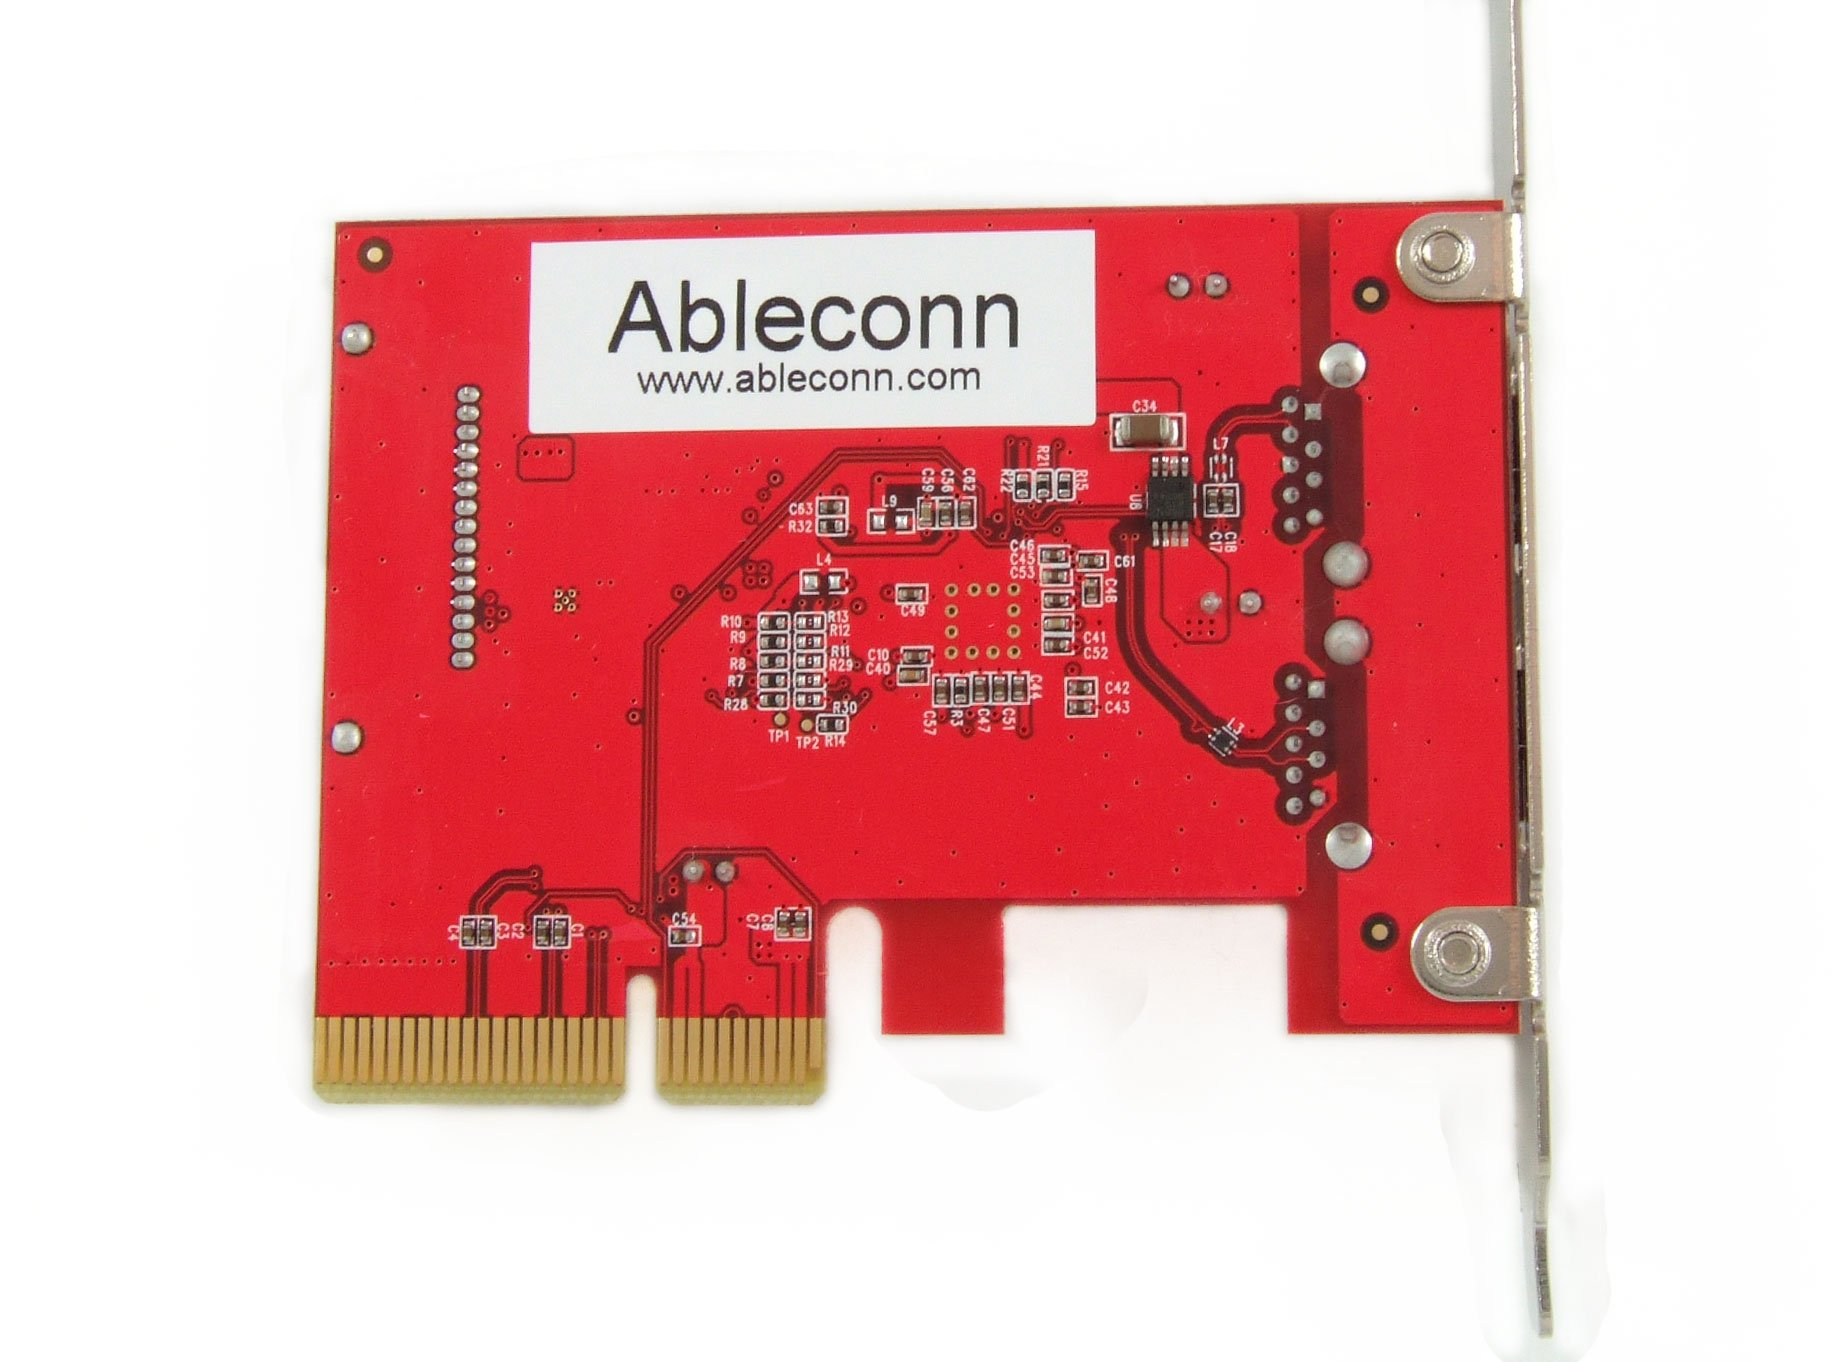 Ableconn PUSB31P2A USB 3.1 Gen 2 (10 Gbps) 2-Port Type-A PCI Express (PCIe) x4 Host Adapter Card - Support MacOS 10.12/10.13 and Windows 10/8